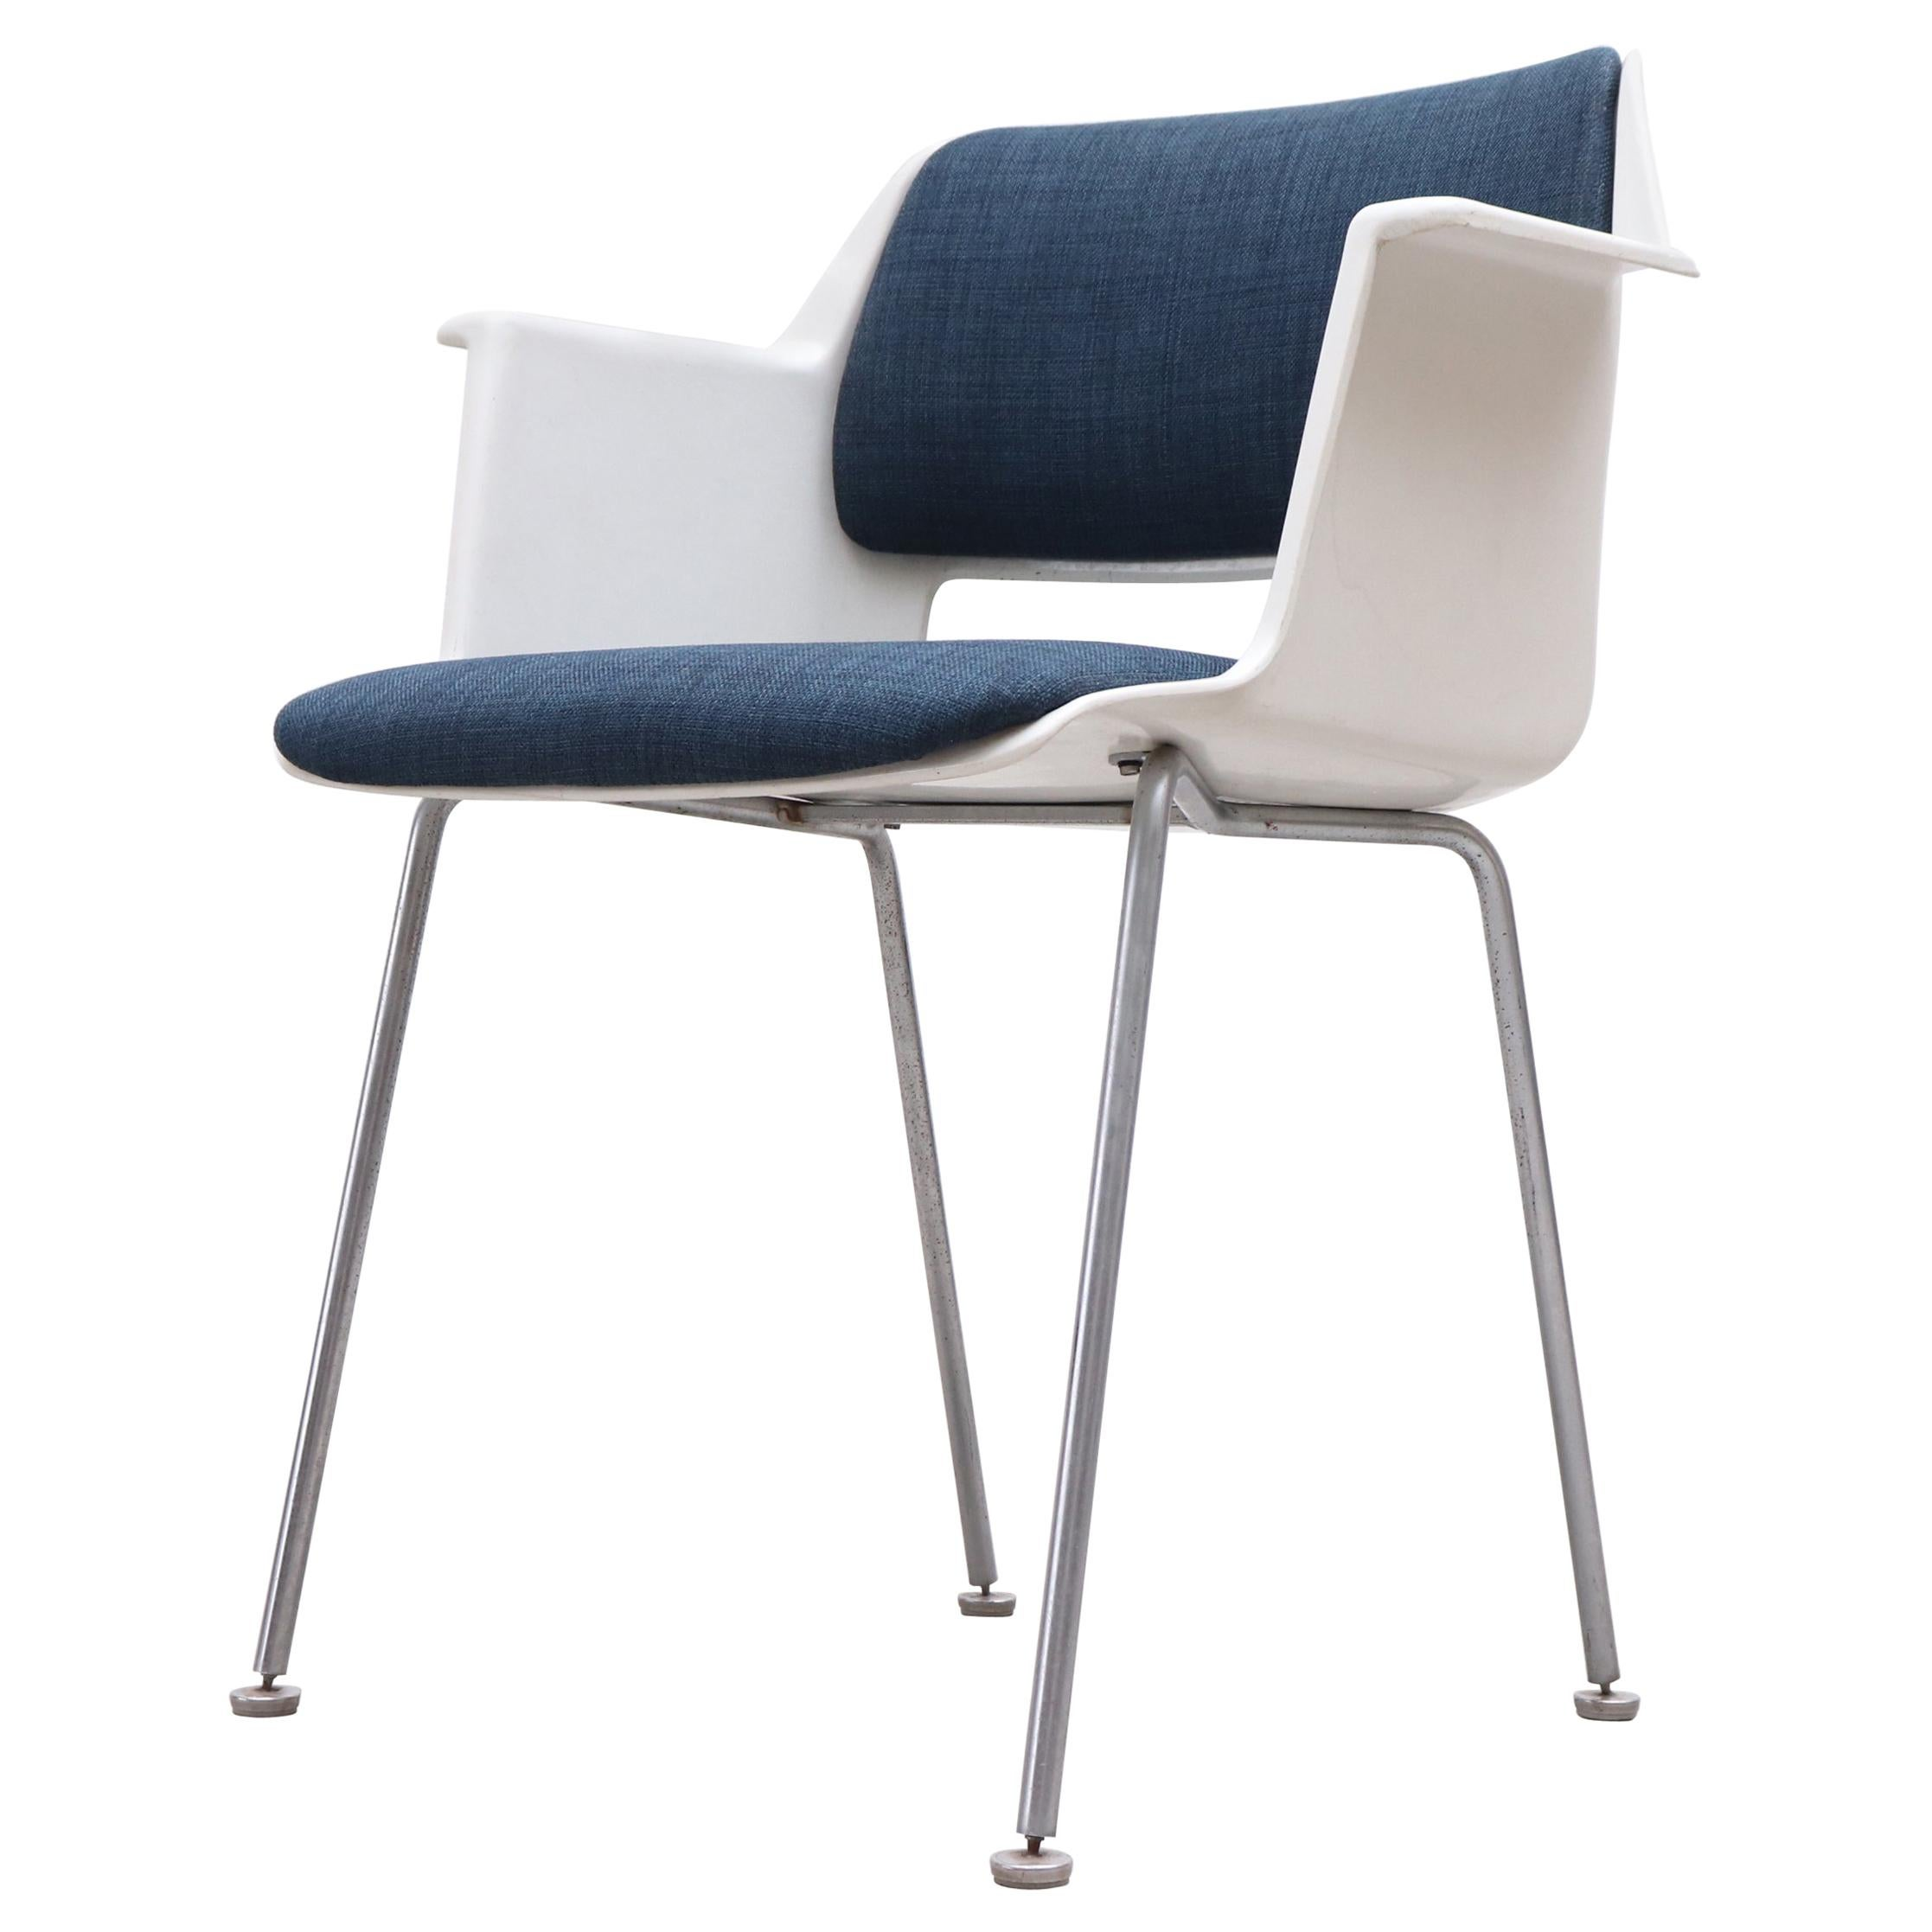 Saarinen Style Arm Chair by A.R. Cordemeyer for Gispen